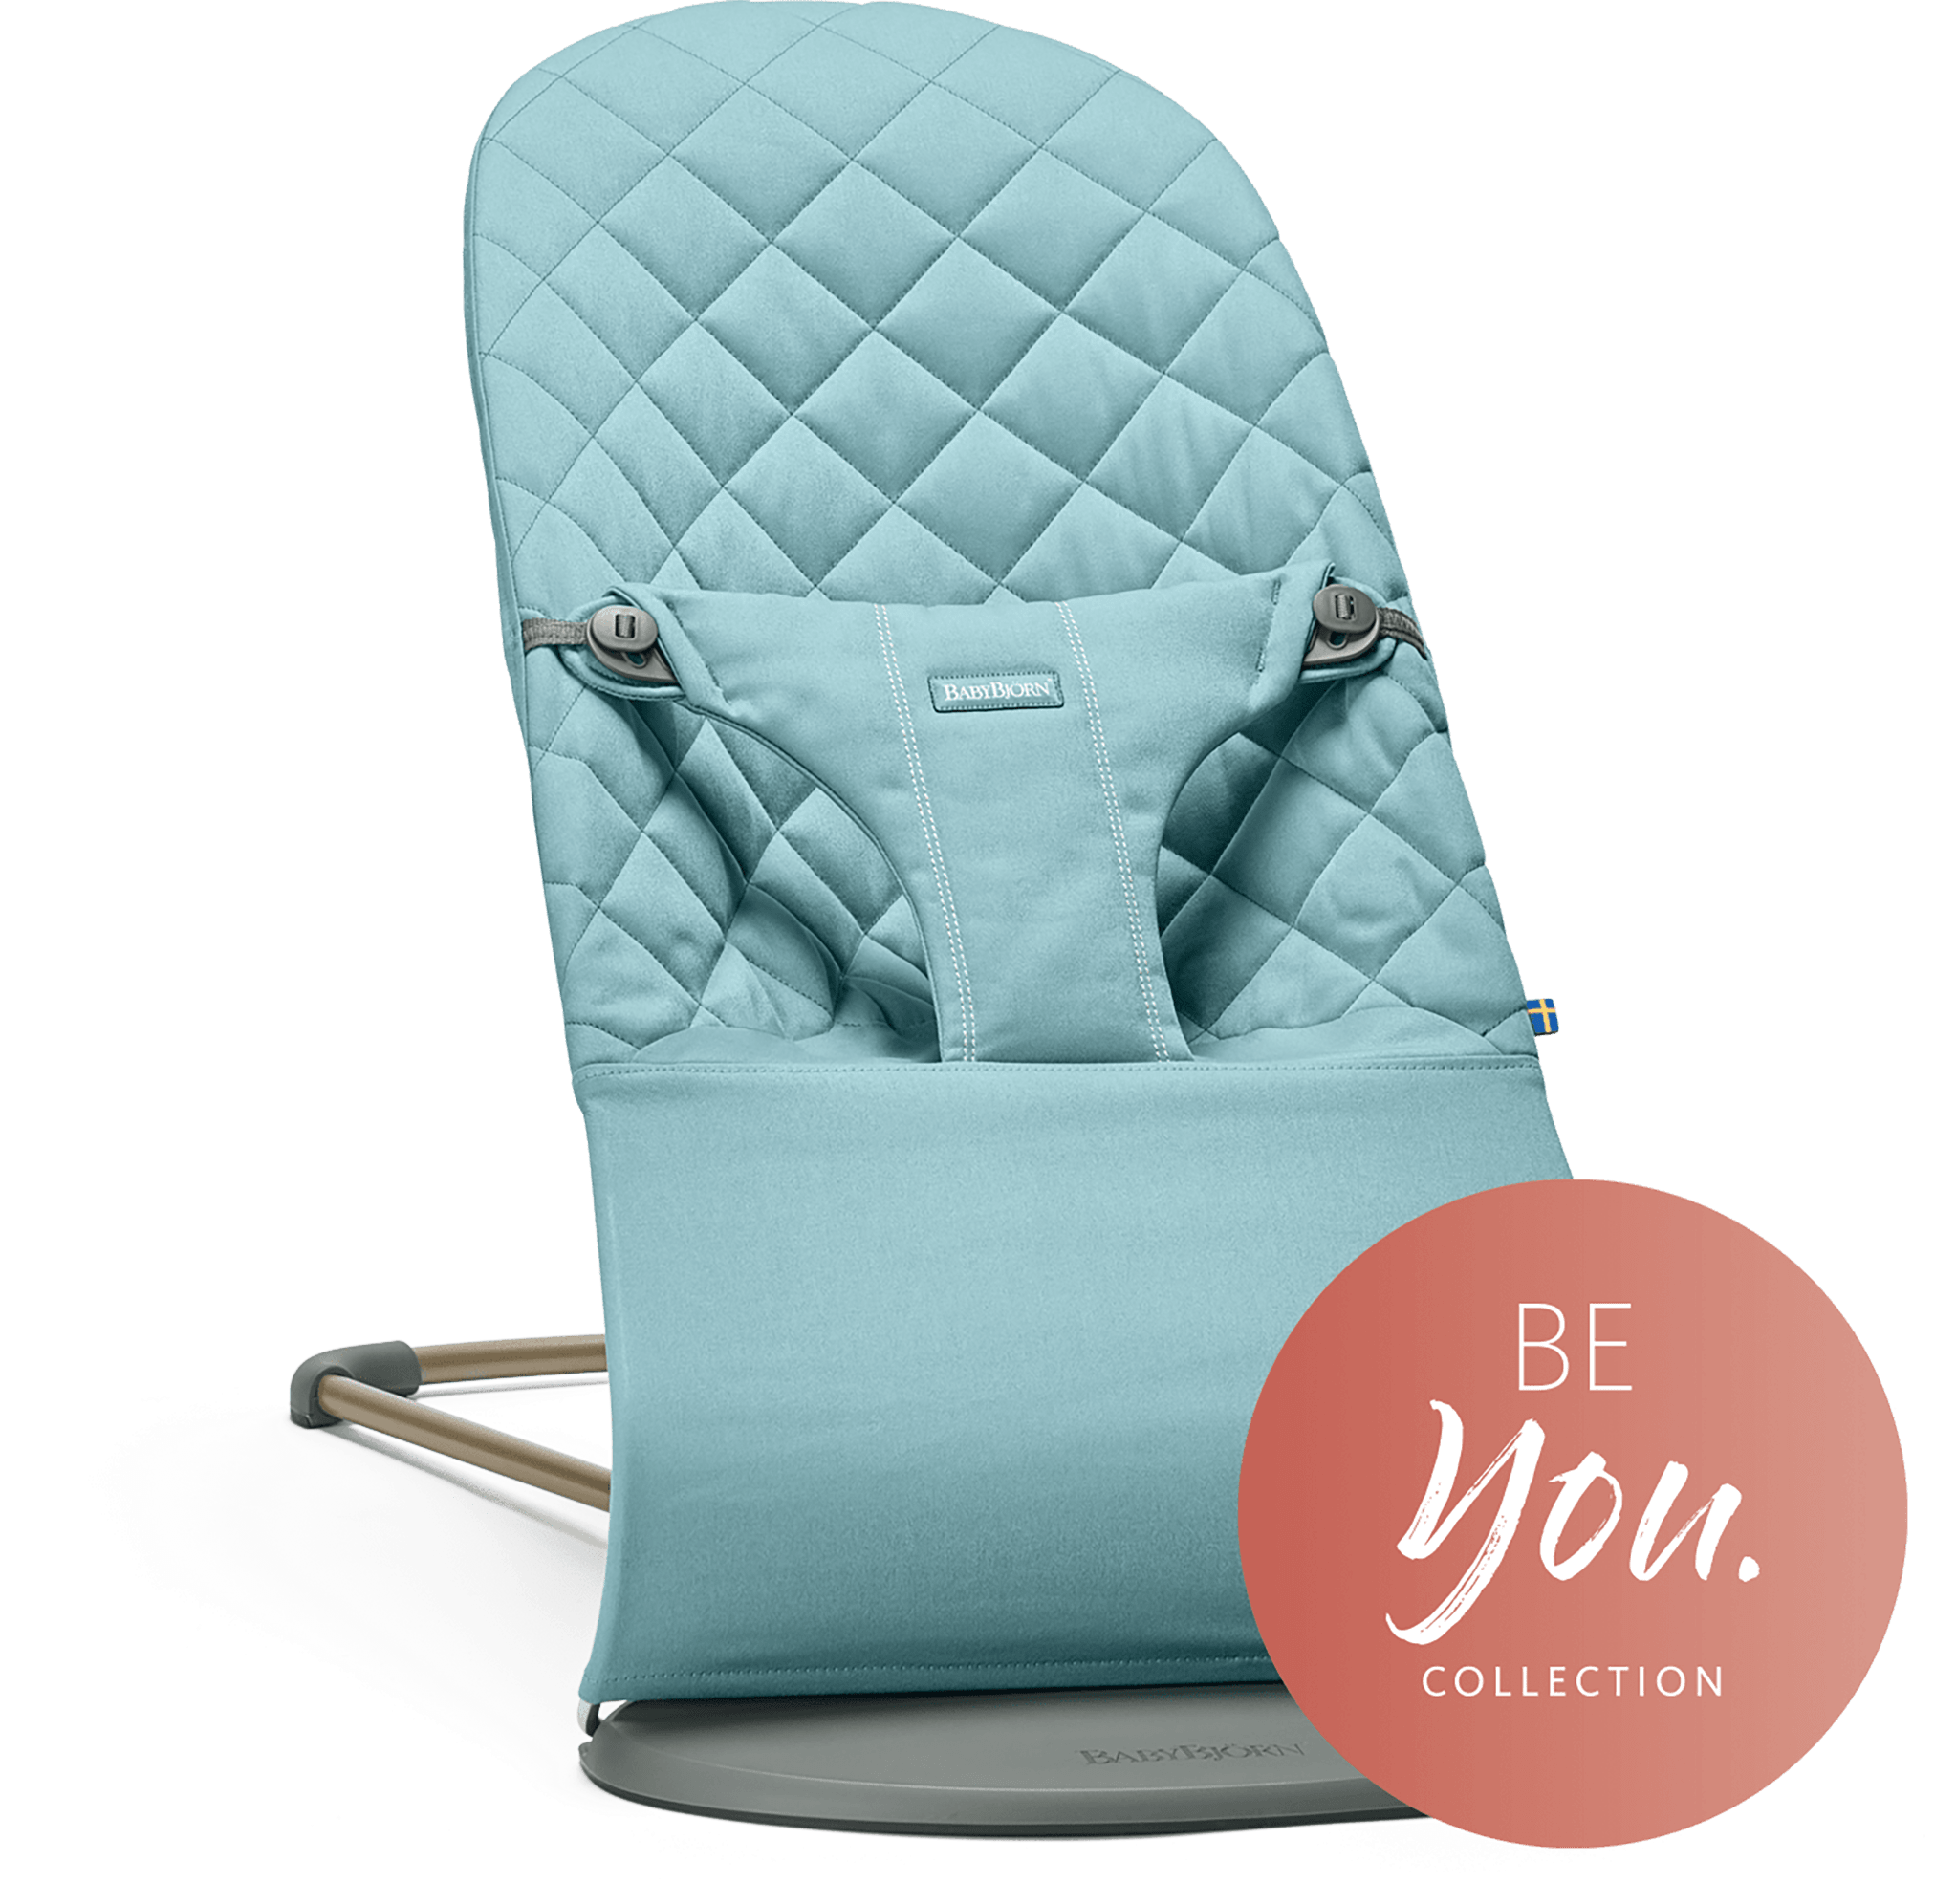 BABYBJÖRN Bouncer Bliss in vintage turquoise cotton, an ergonomic and cozy baby bouncer with gentle rocking.